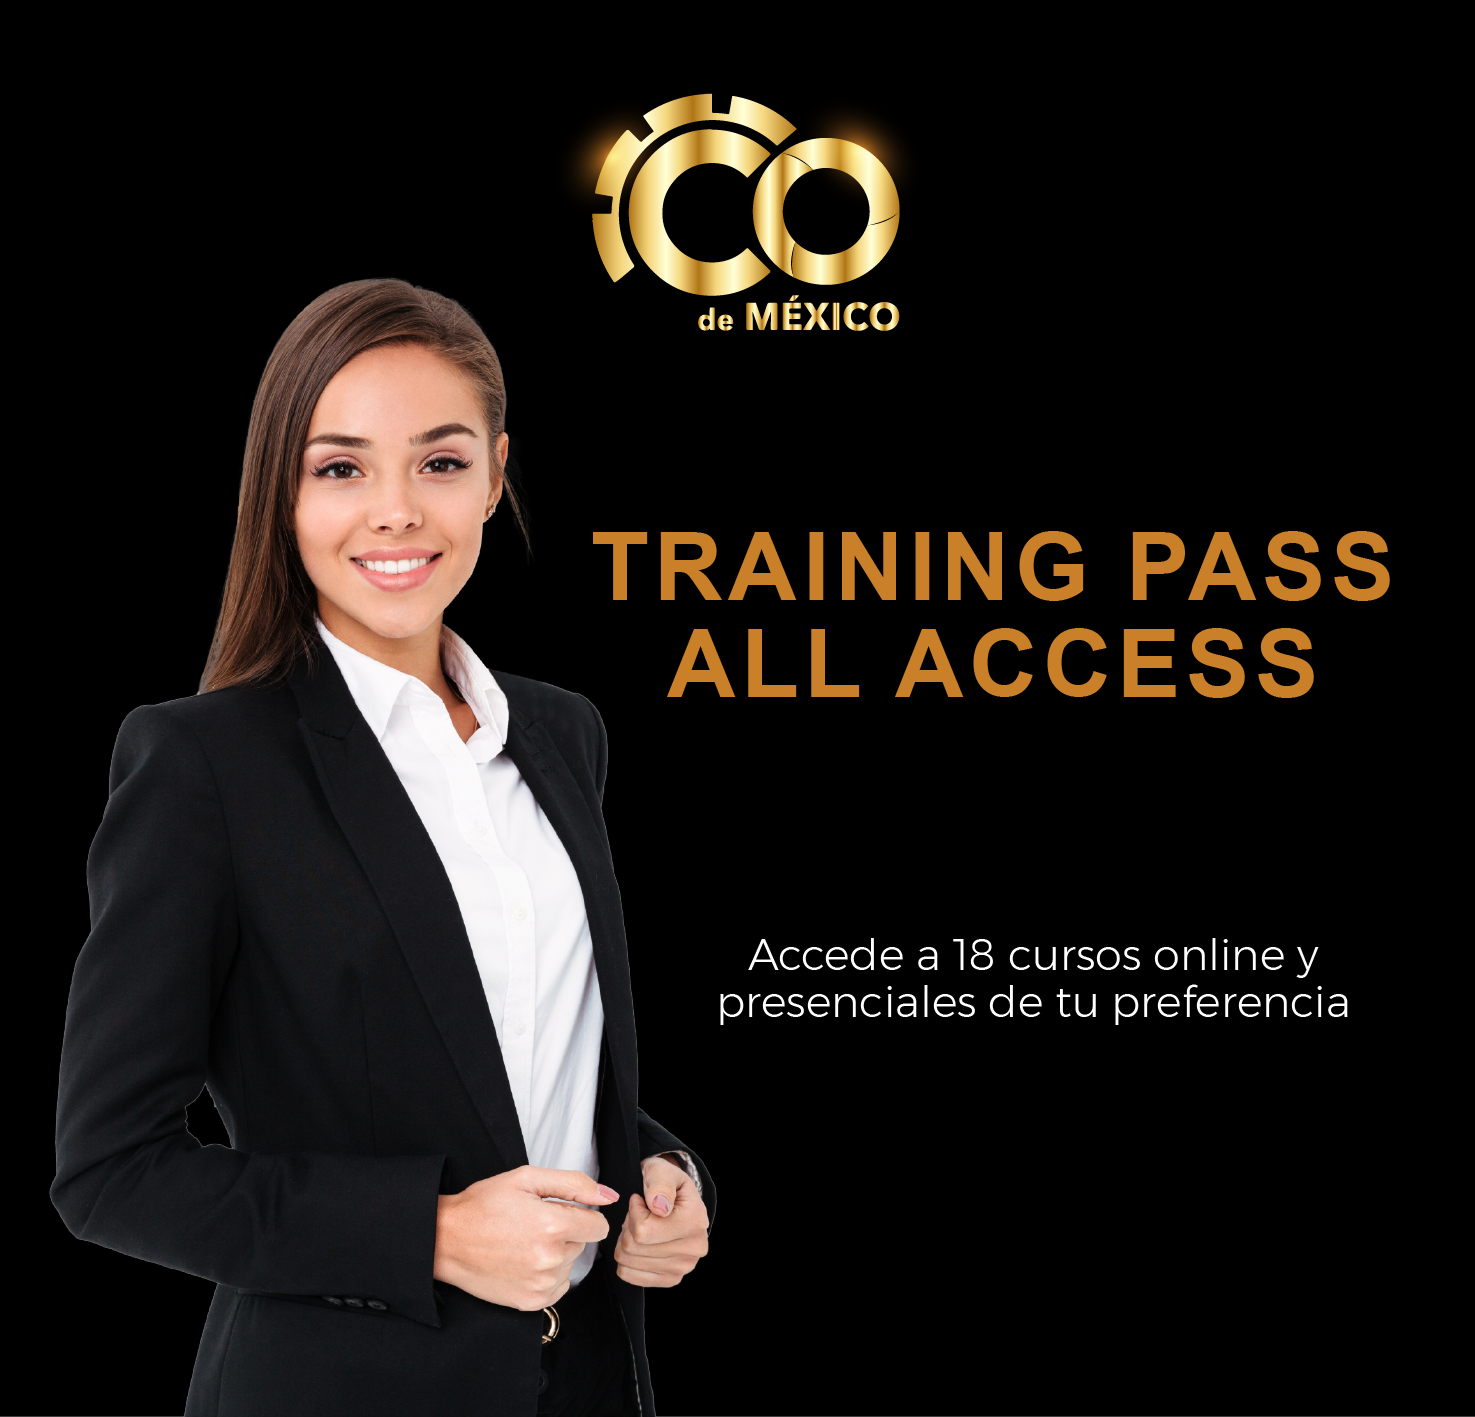 Training Pass All Access